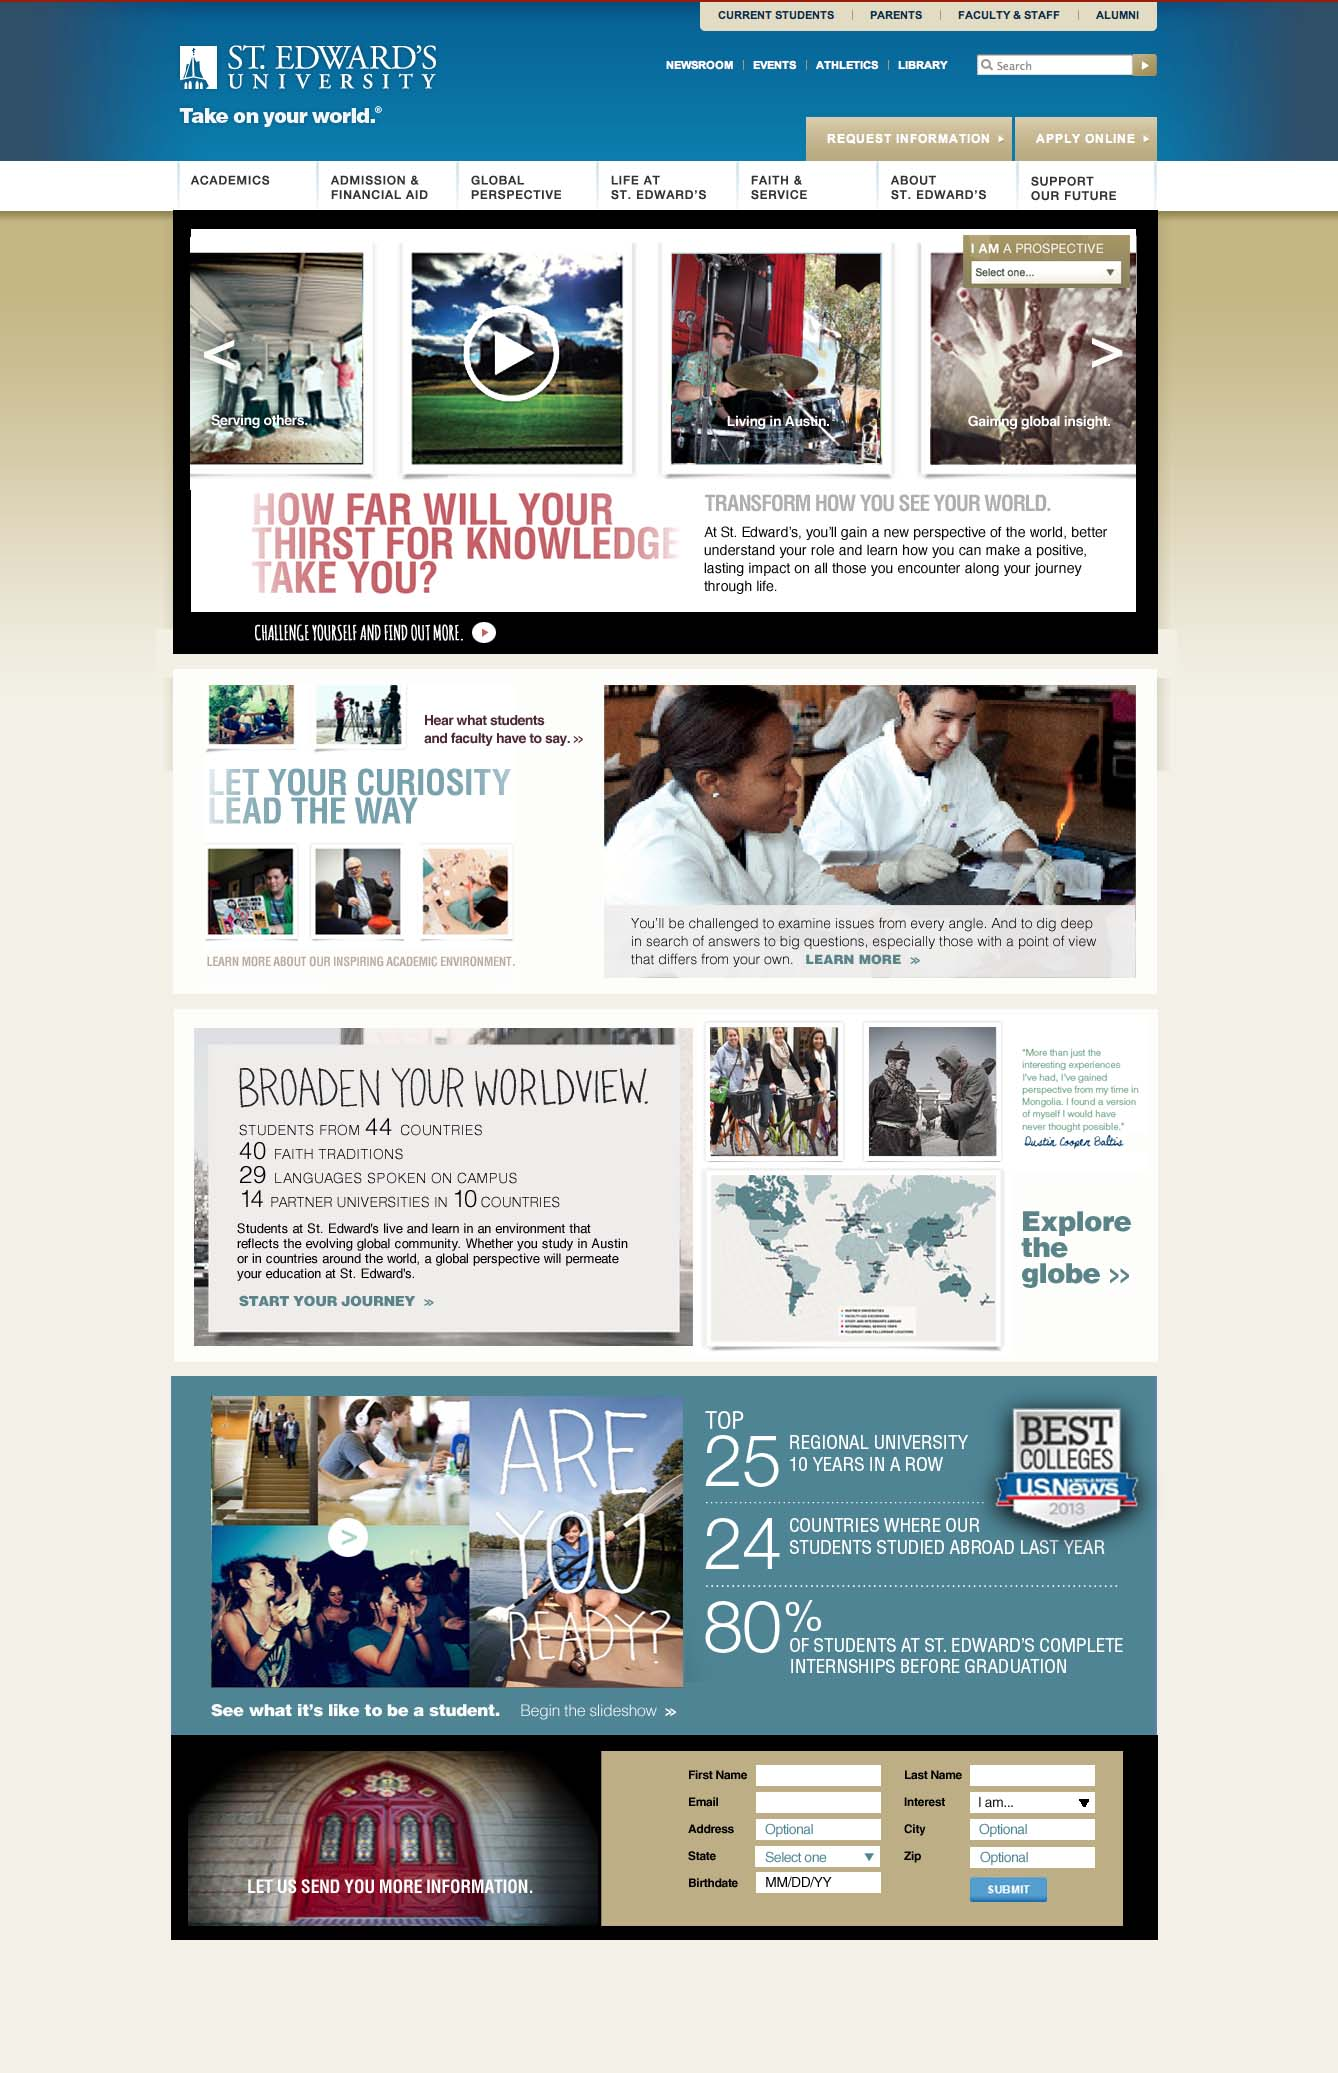 StEds_perspective_Trad landing page layout_v20 8.14.jpg